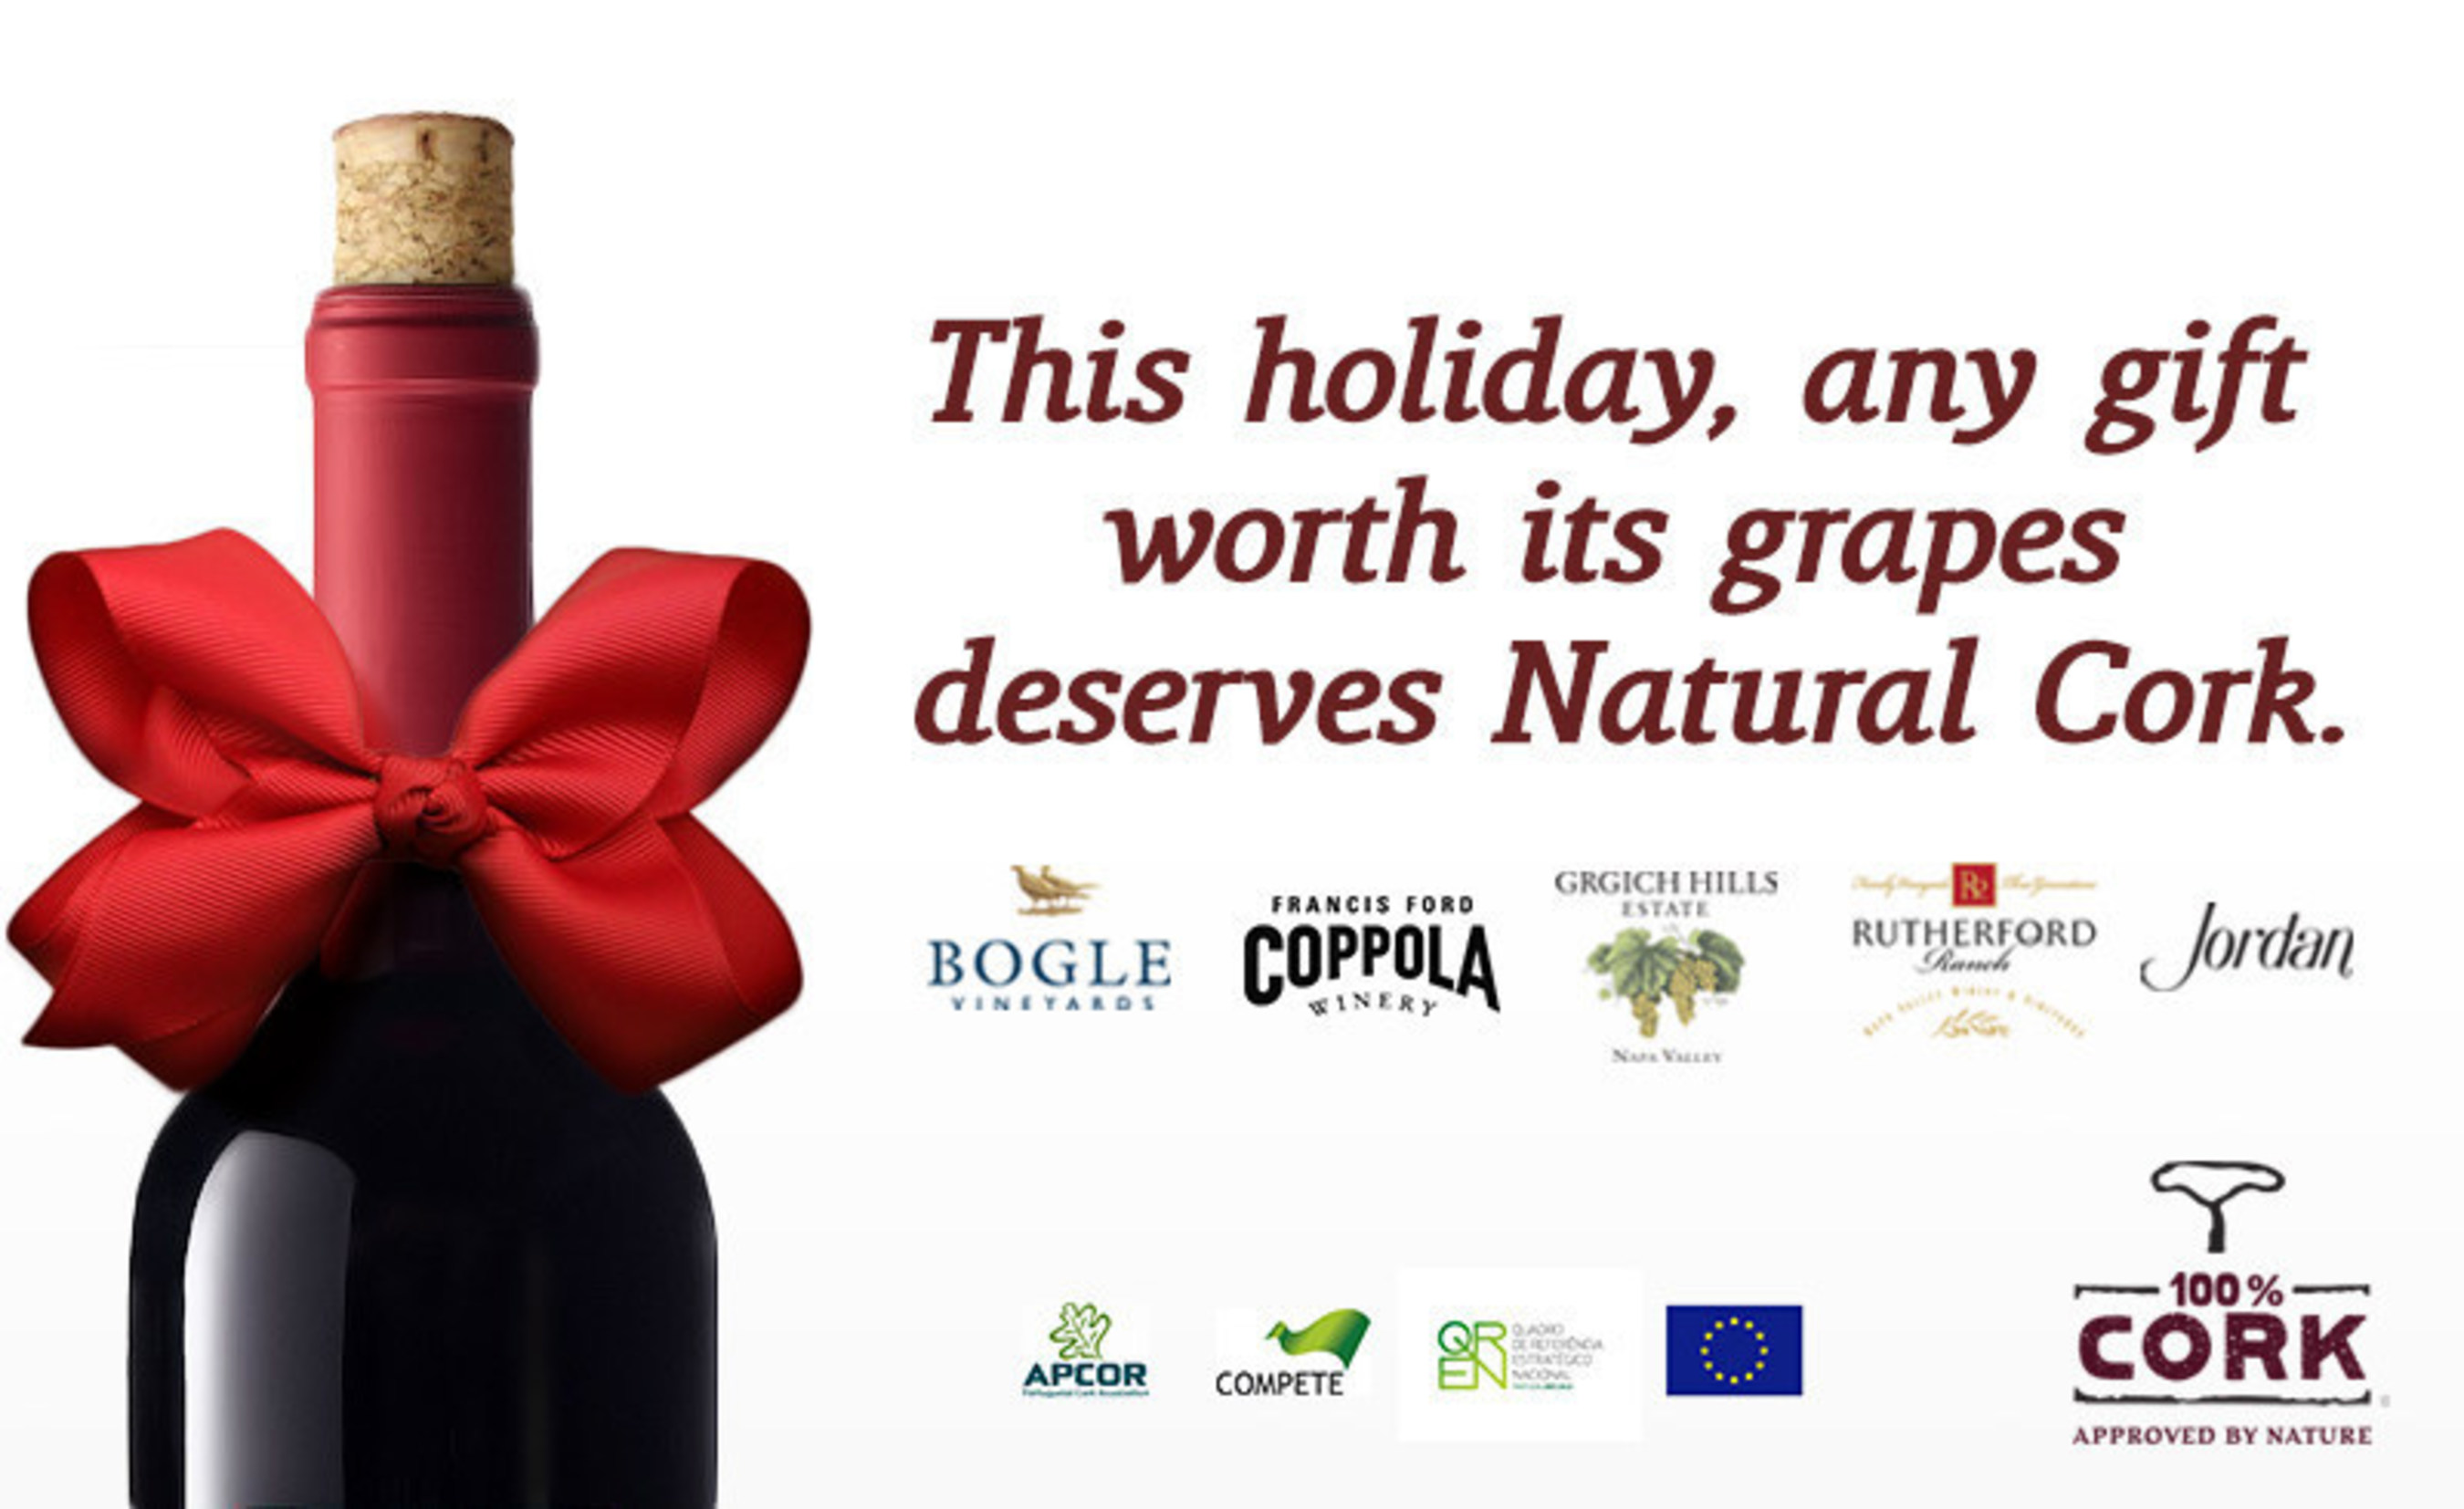 Leading Wineries Join Cork Industry to Highlight Consumer Preference for Natural Cork